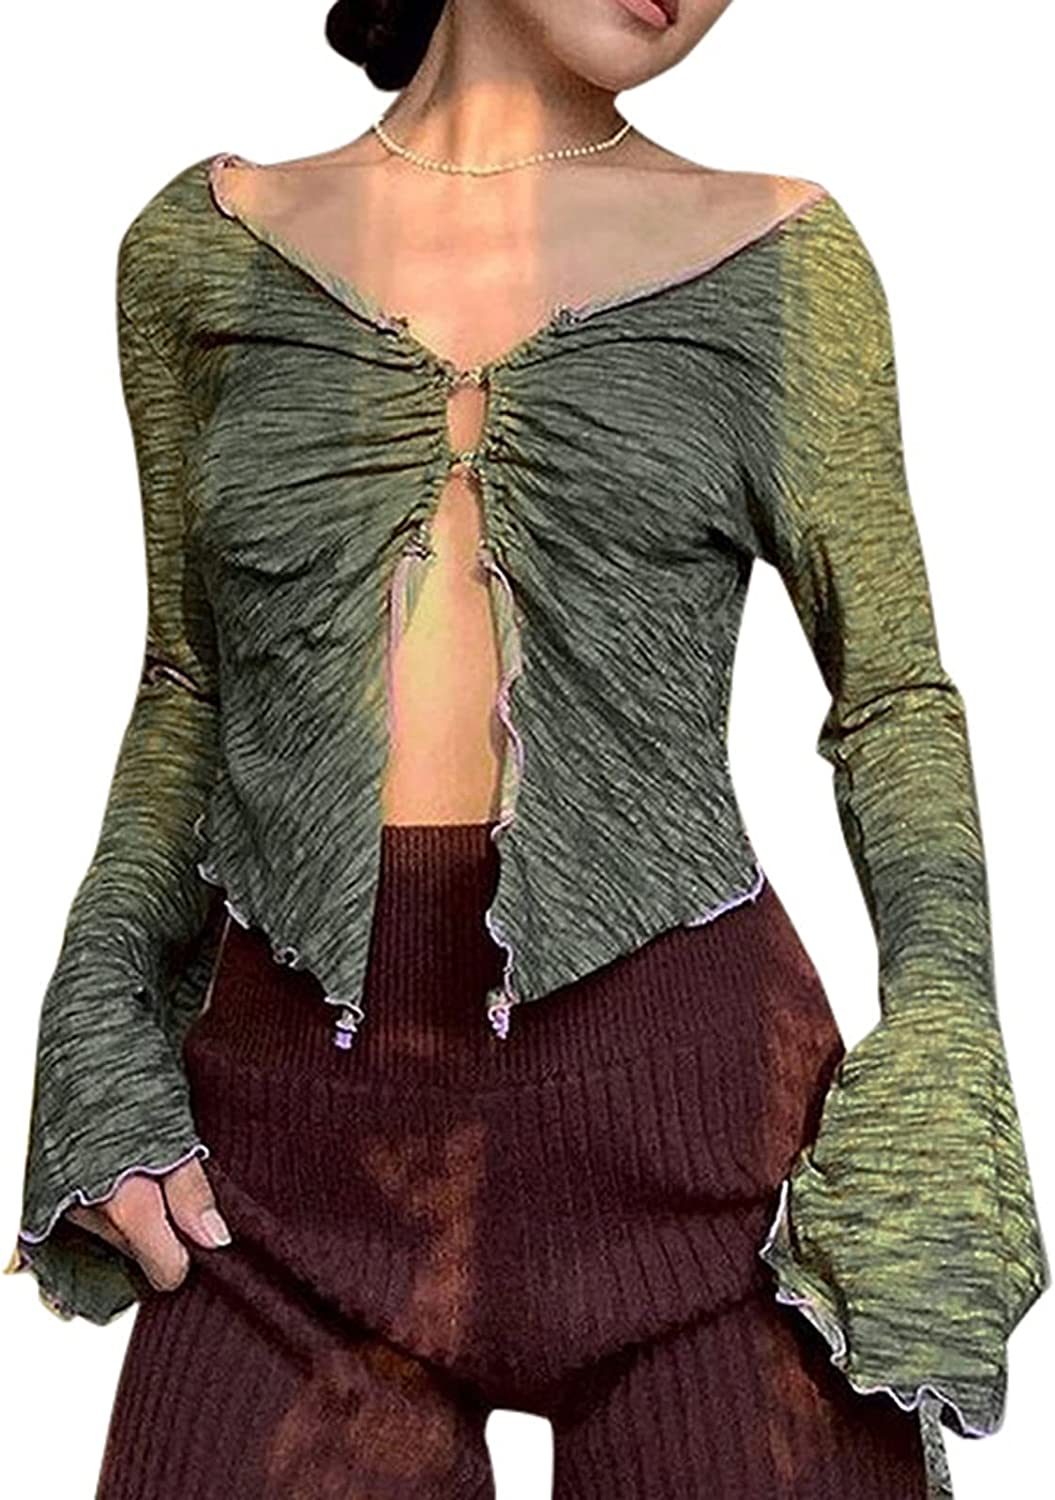 Womens Long Sleeve Y2k Cropped Cardigan Top Button V Neck Vintage Knitted Sweaters Open Front Loose E-Girls Knitwear Coat